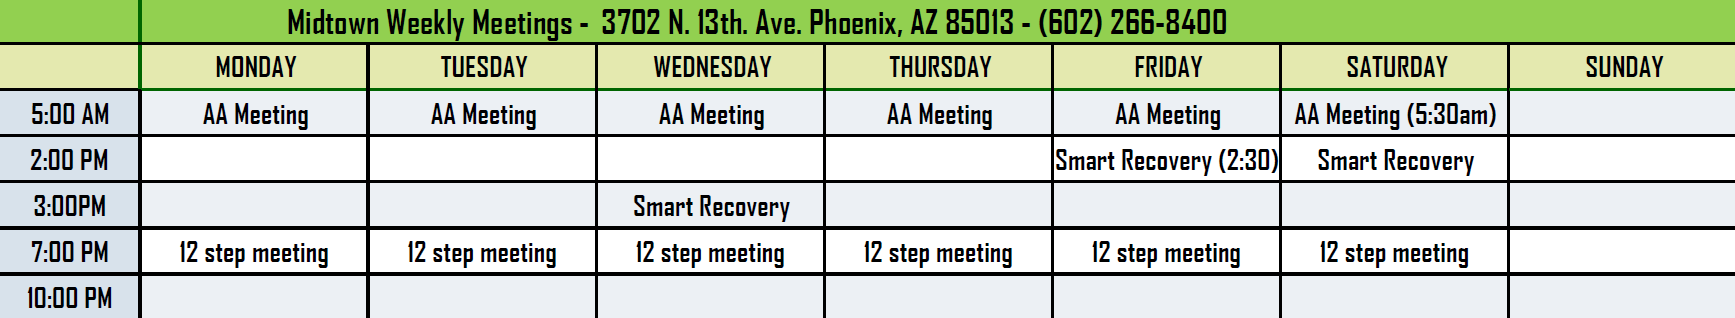 AA 12 Step Meeting Schedule Crossroads Midtown